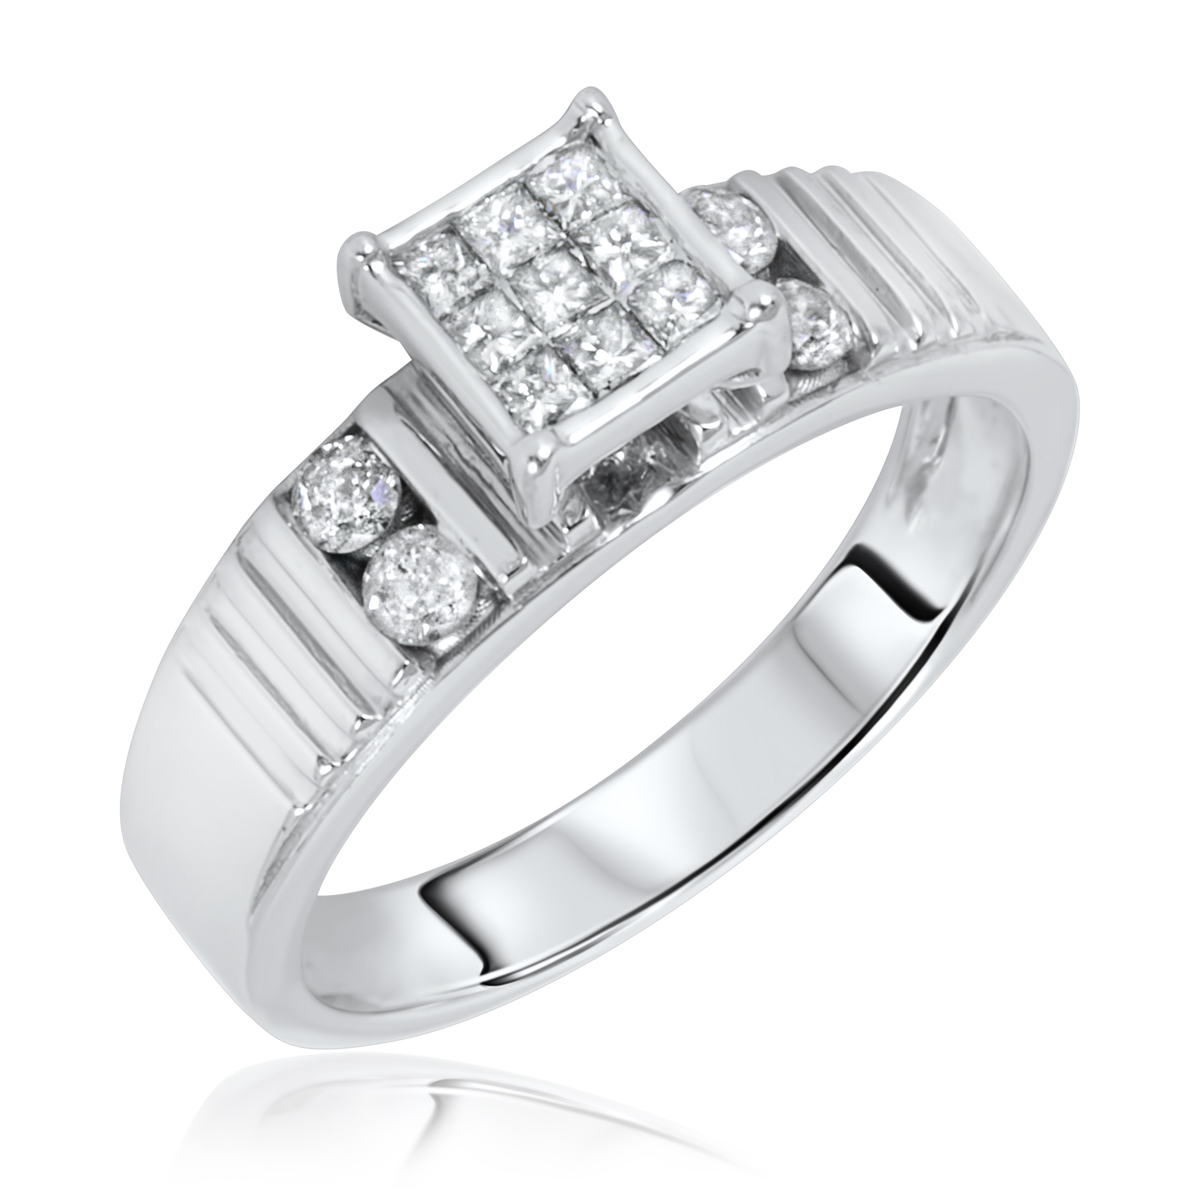 White Gold Wedding Rings For Women With Diamonds 1/2 Carat T.W. Diamond...